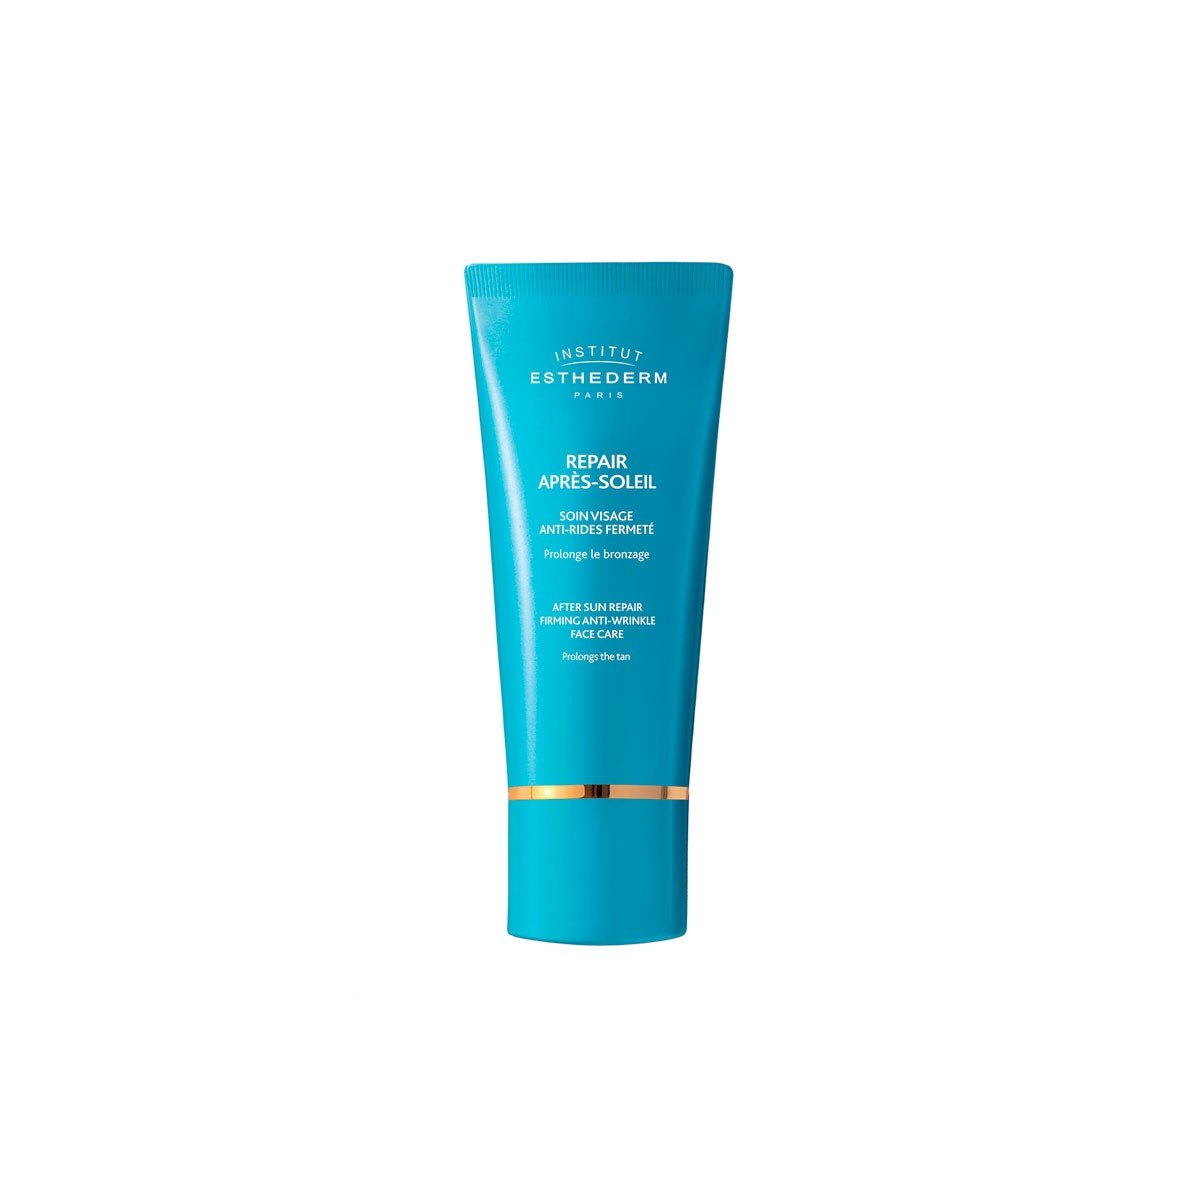 Institut Esthederm Aftersun Repair